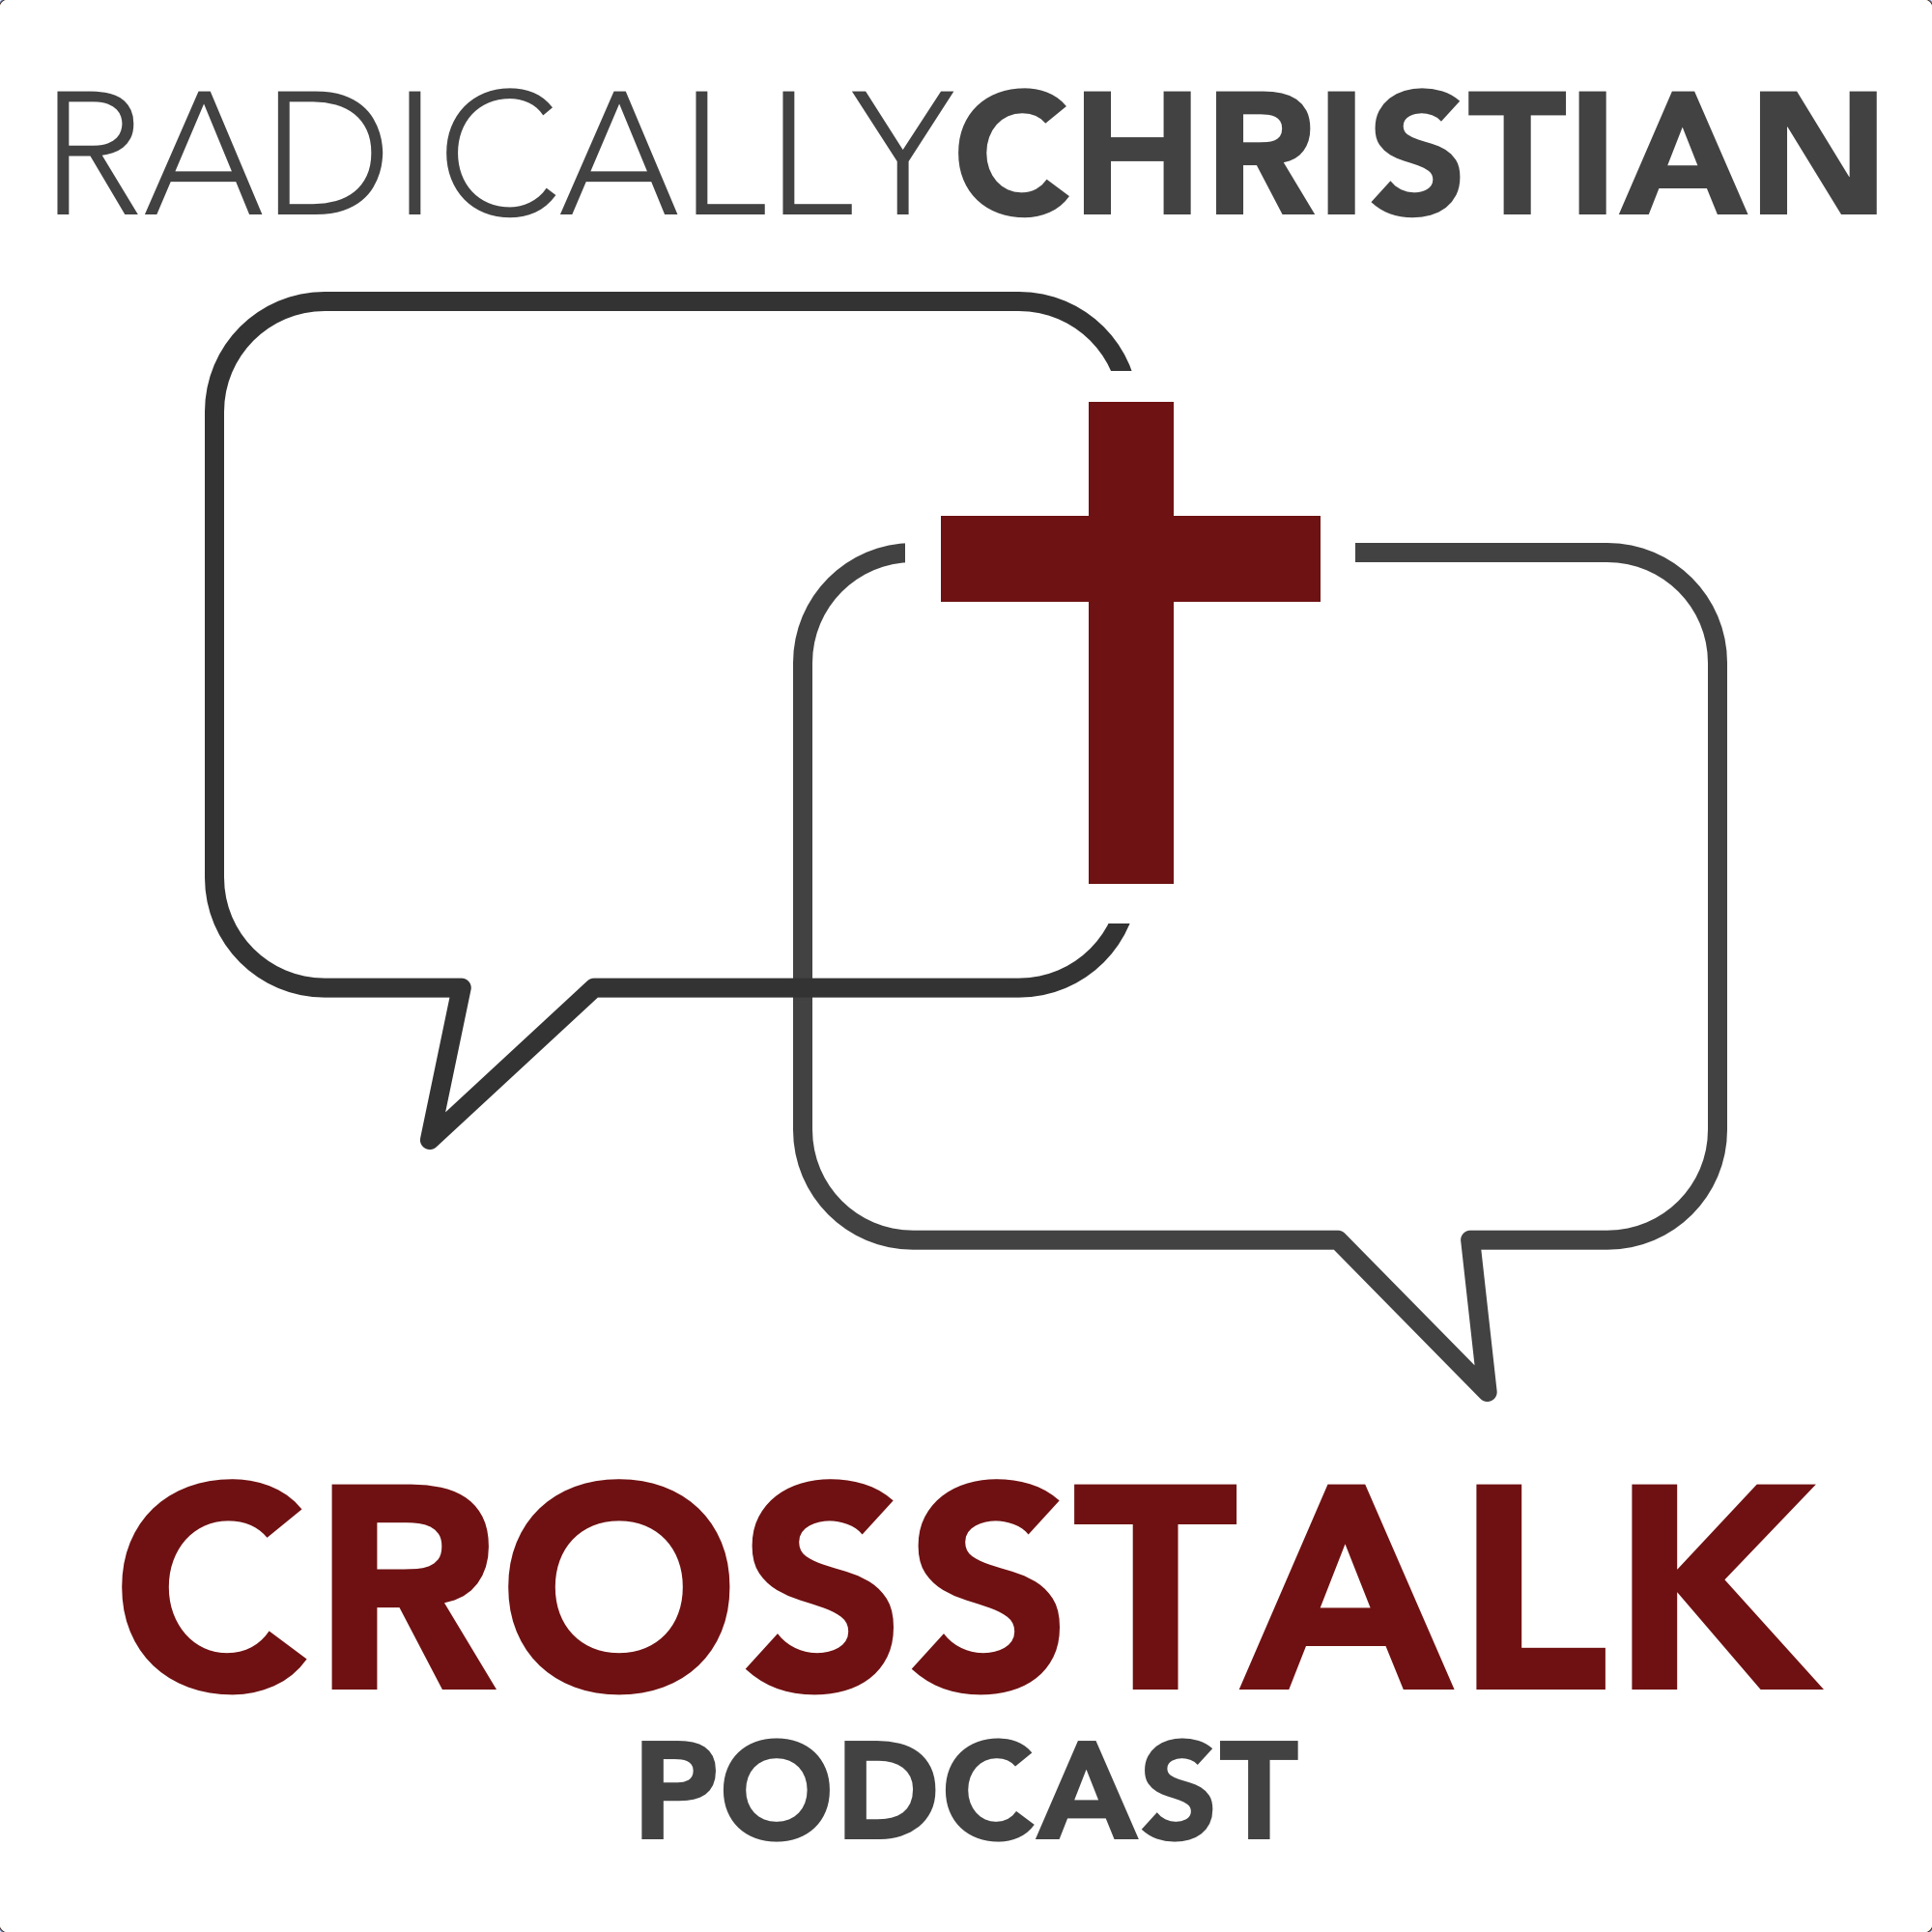 Radically Christian CrossTalk Podcast: Christianity | Church of Christ | Bible Discussion